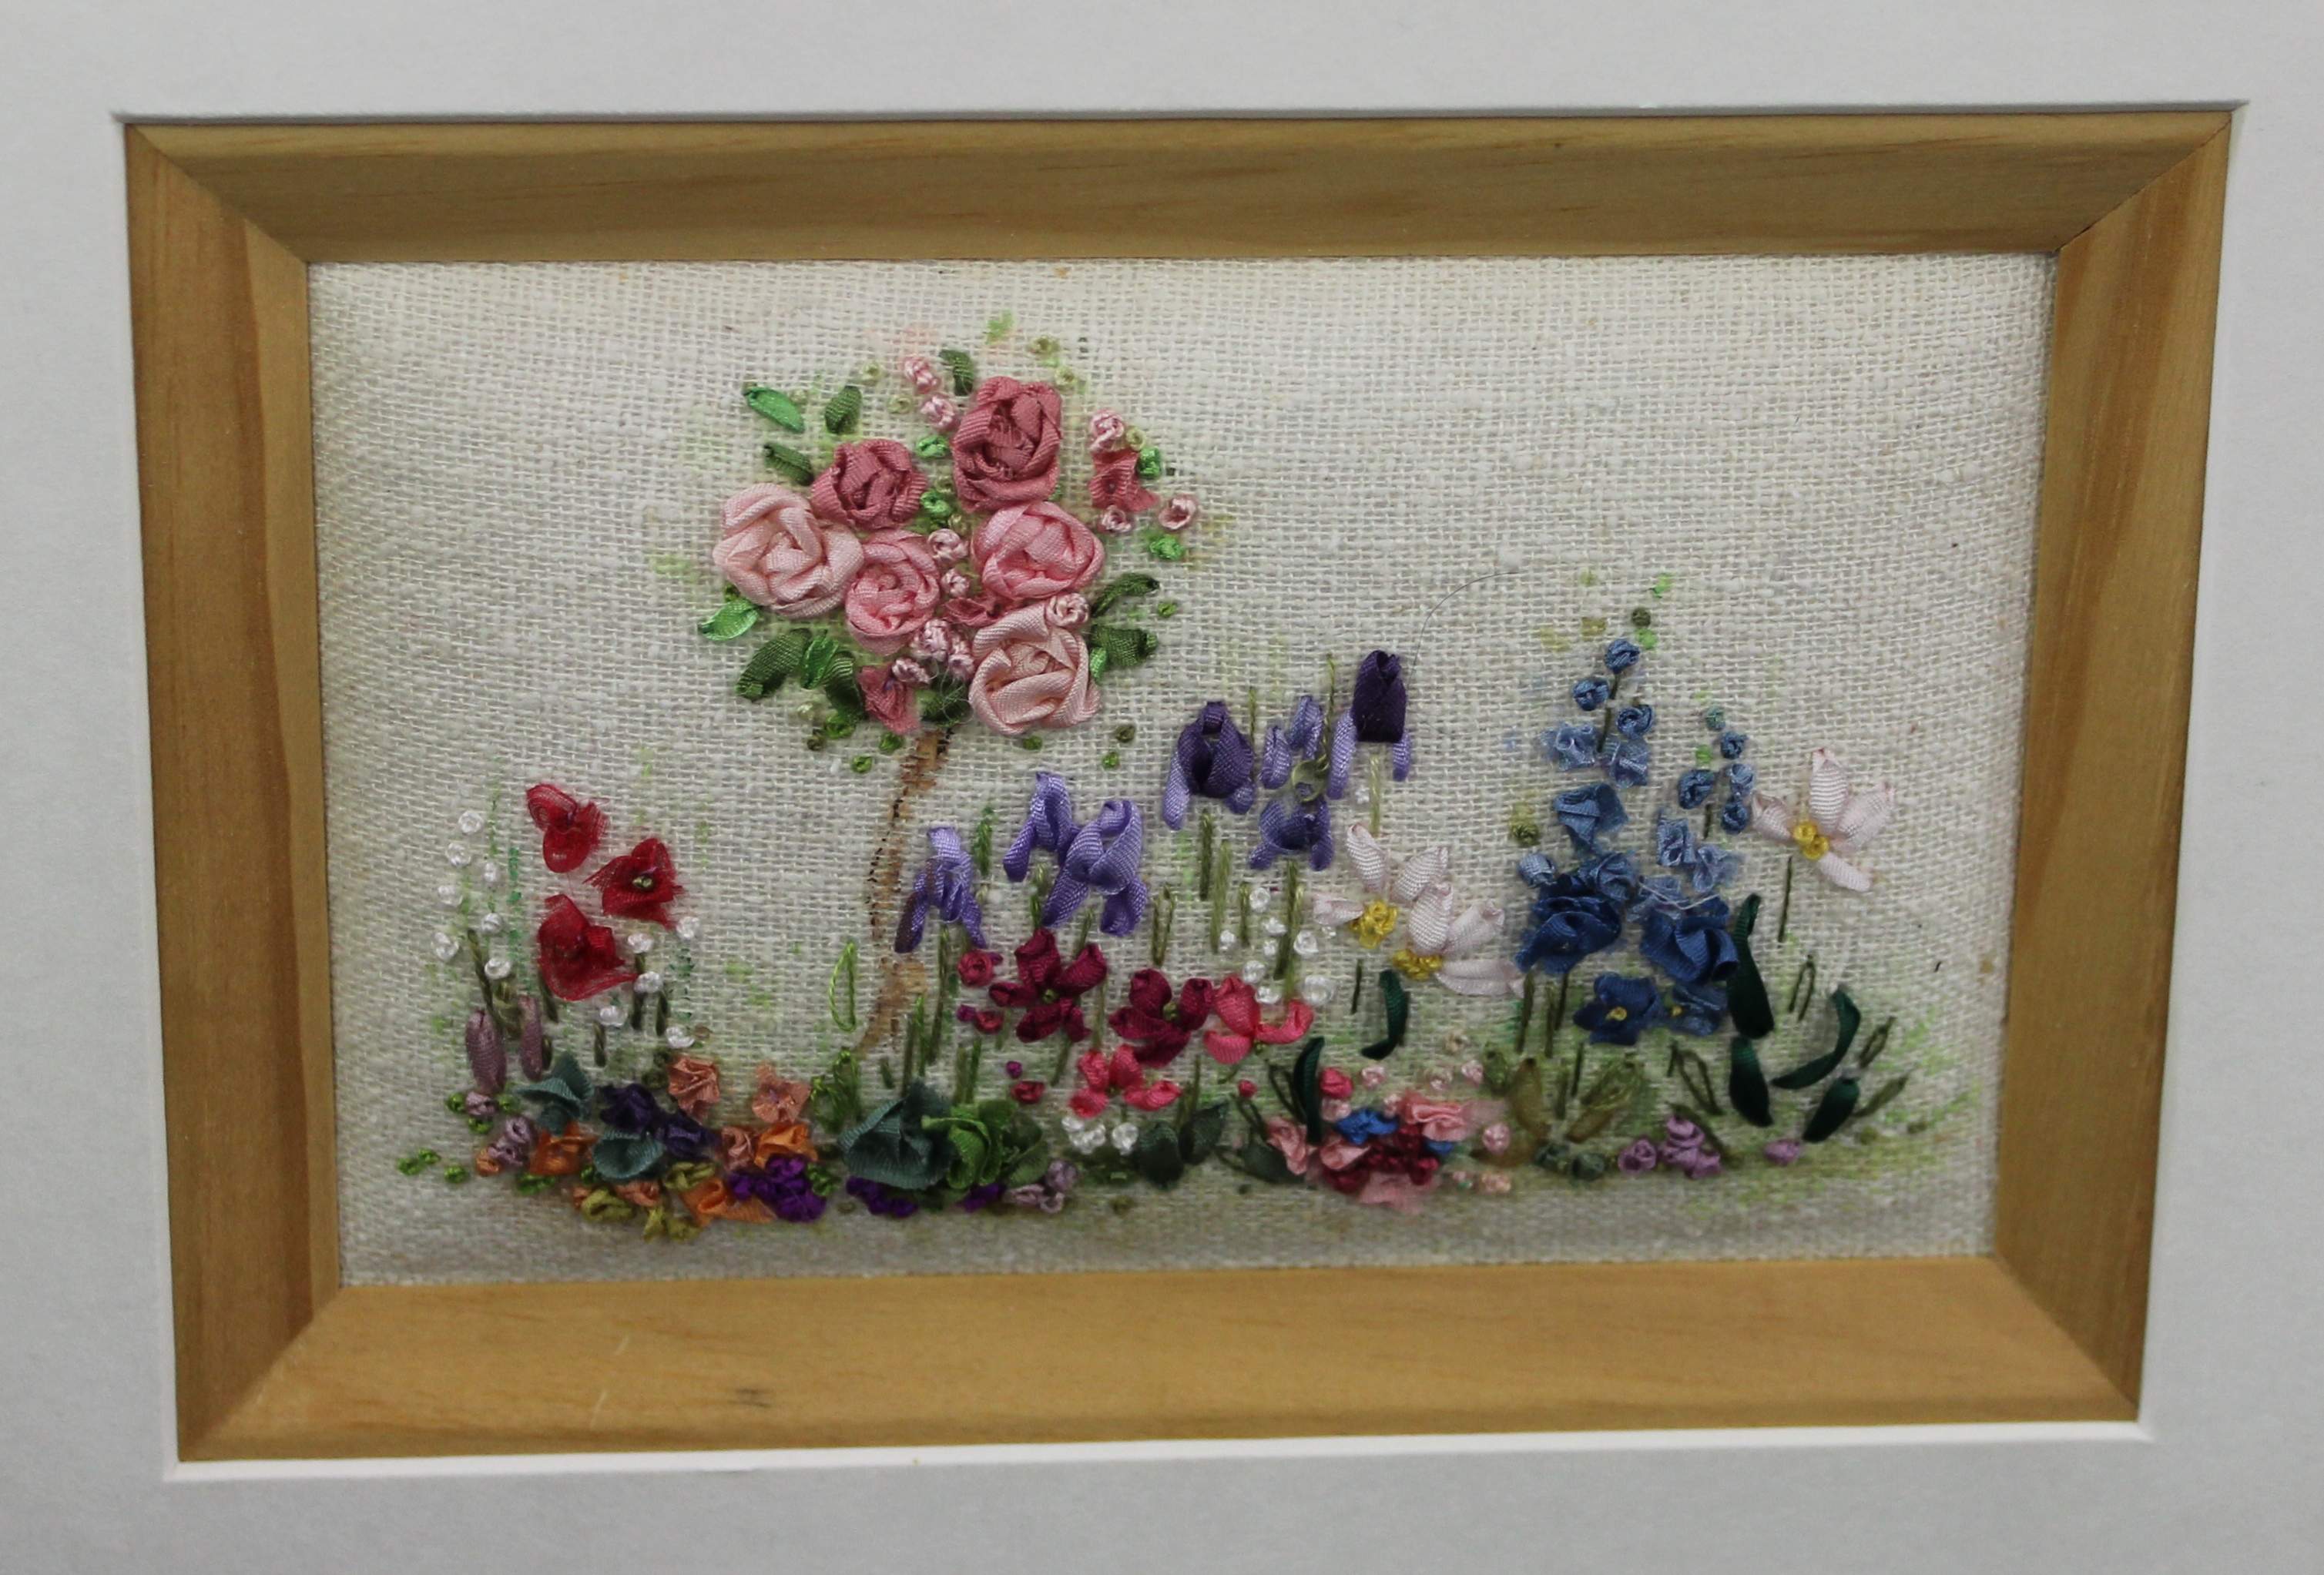 Ribbon Embroidery: A Cottage Garden (WS) : Marilyn Pipe